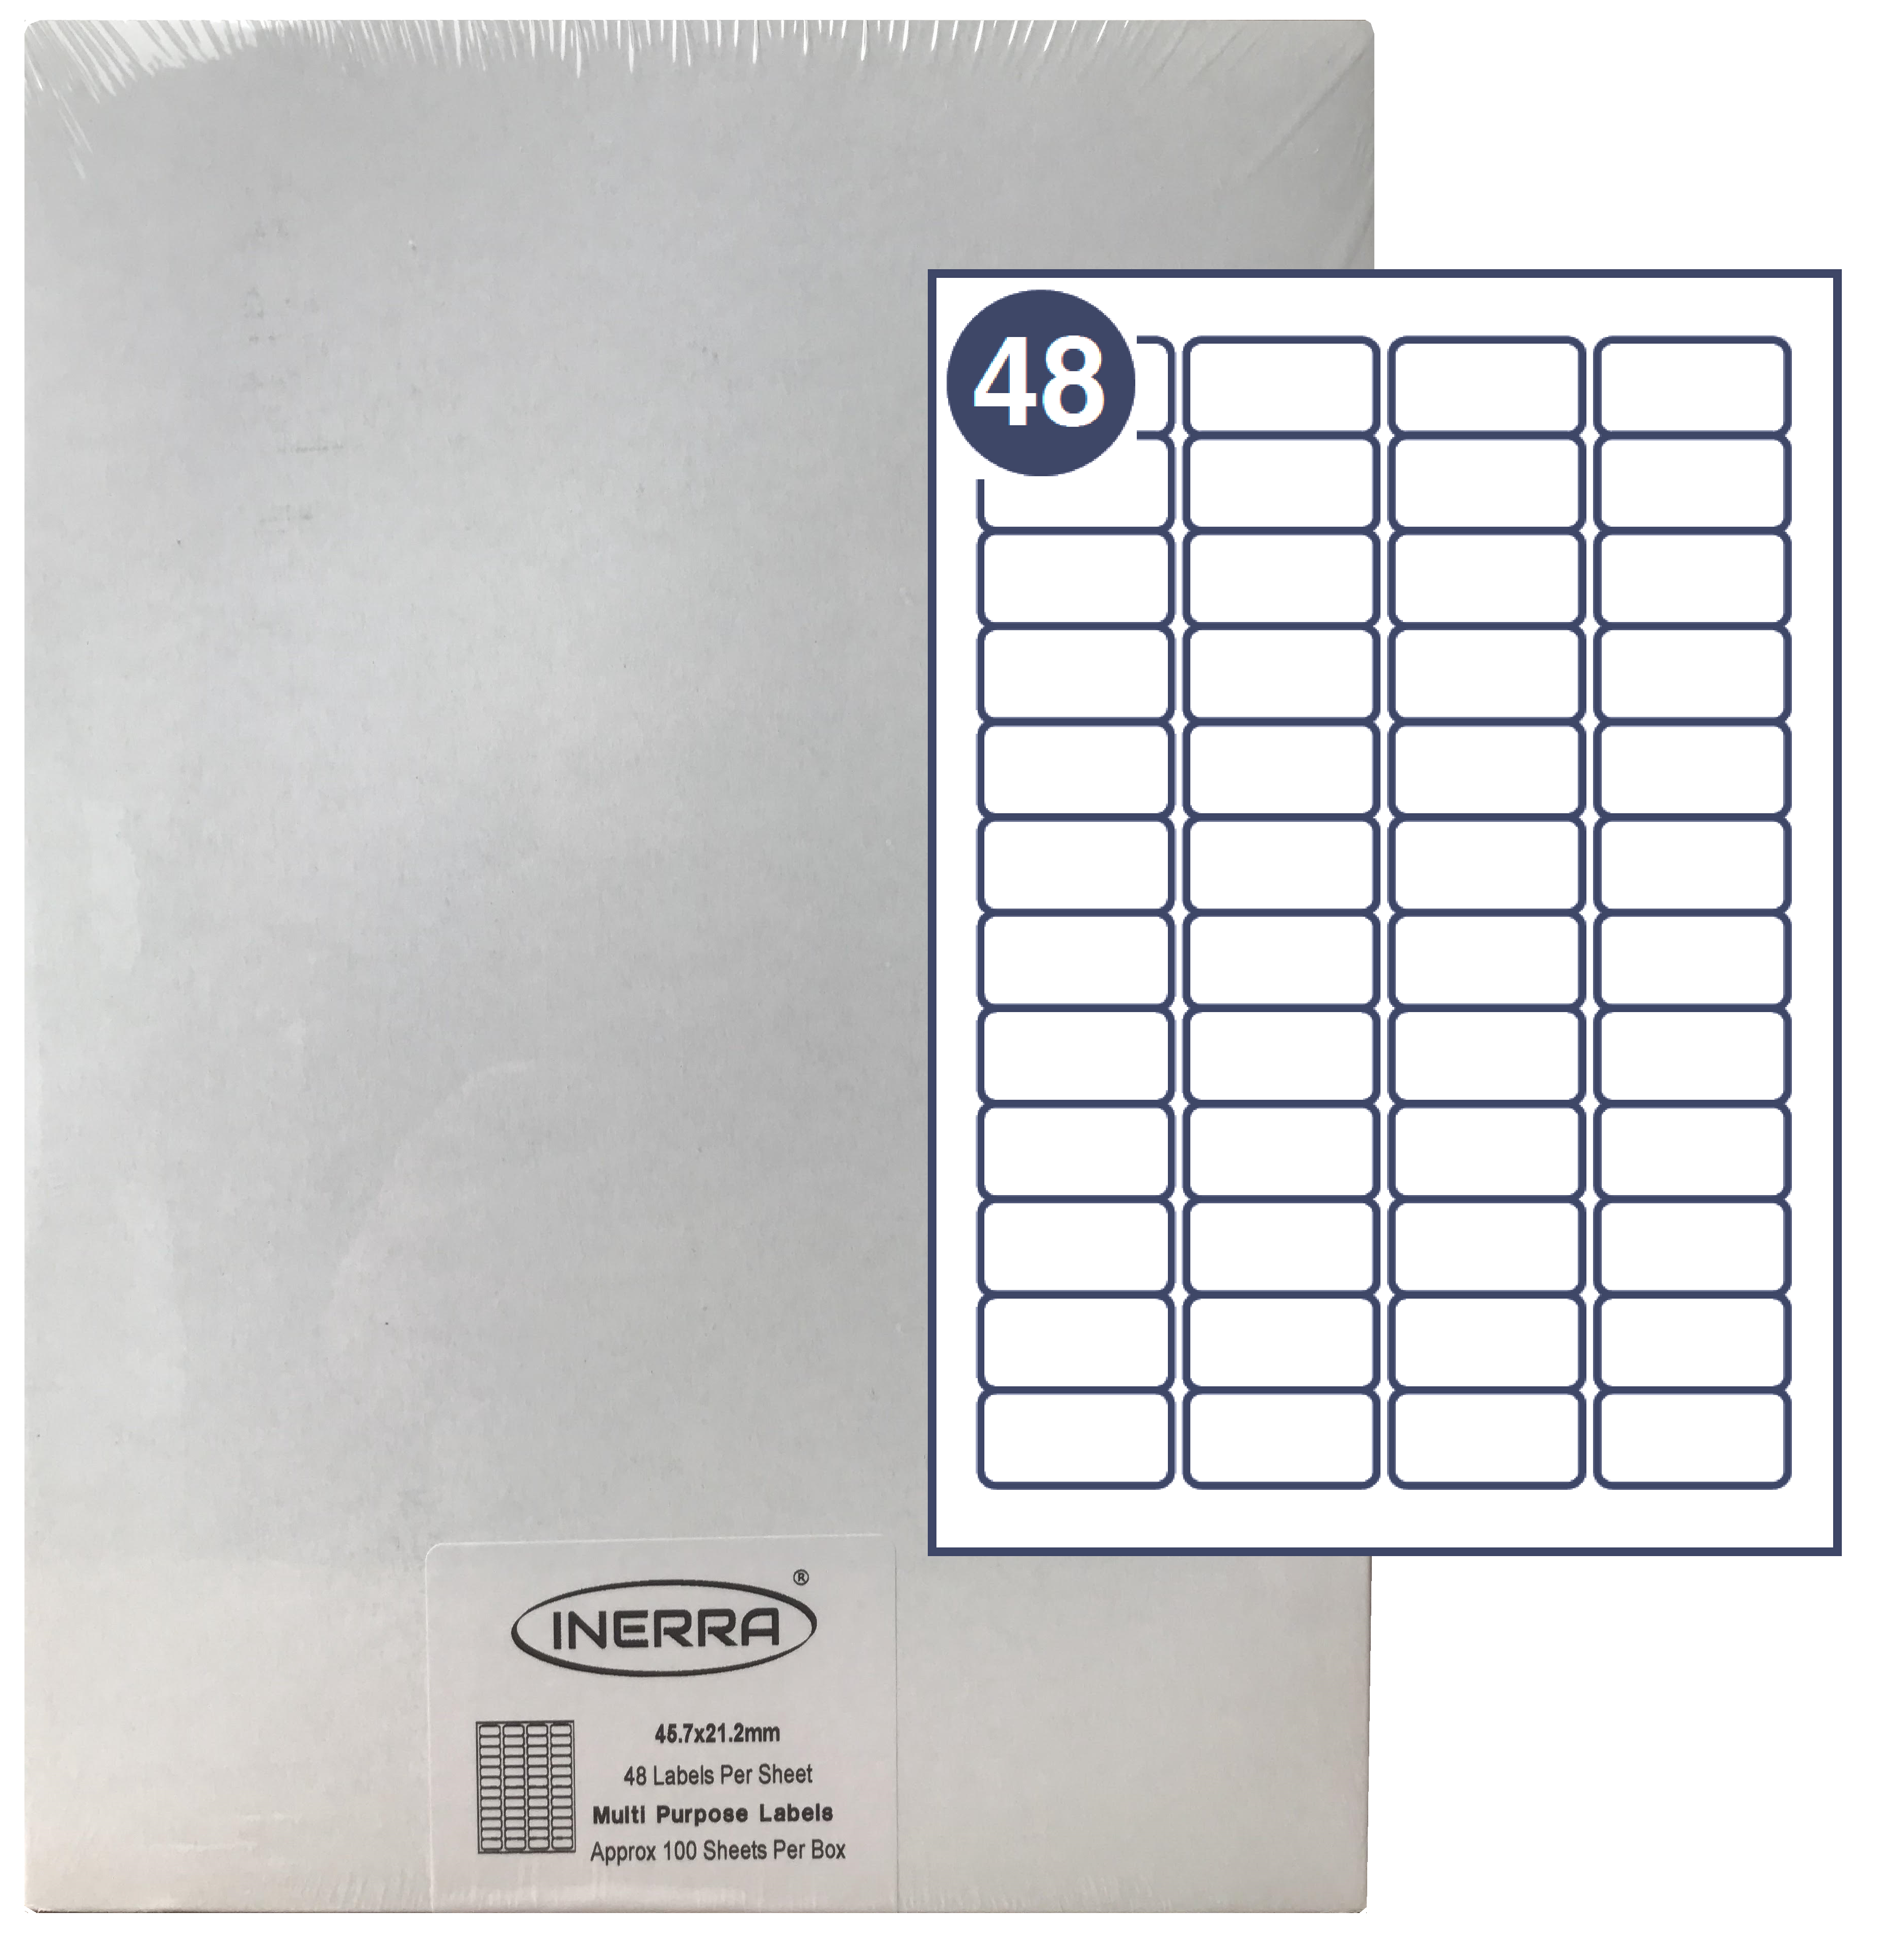 Free Template for INERRA Blank Labels - 21 Per Sheet Pertaining To Word Label Template 12 Per Sheet